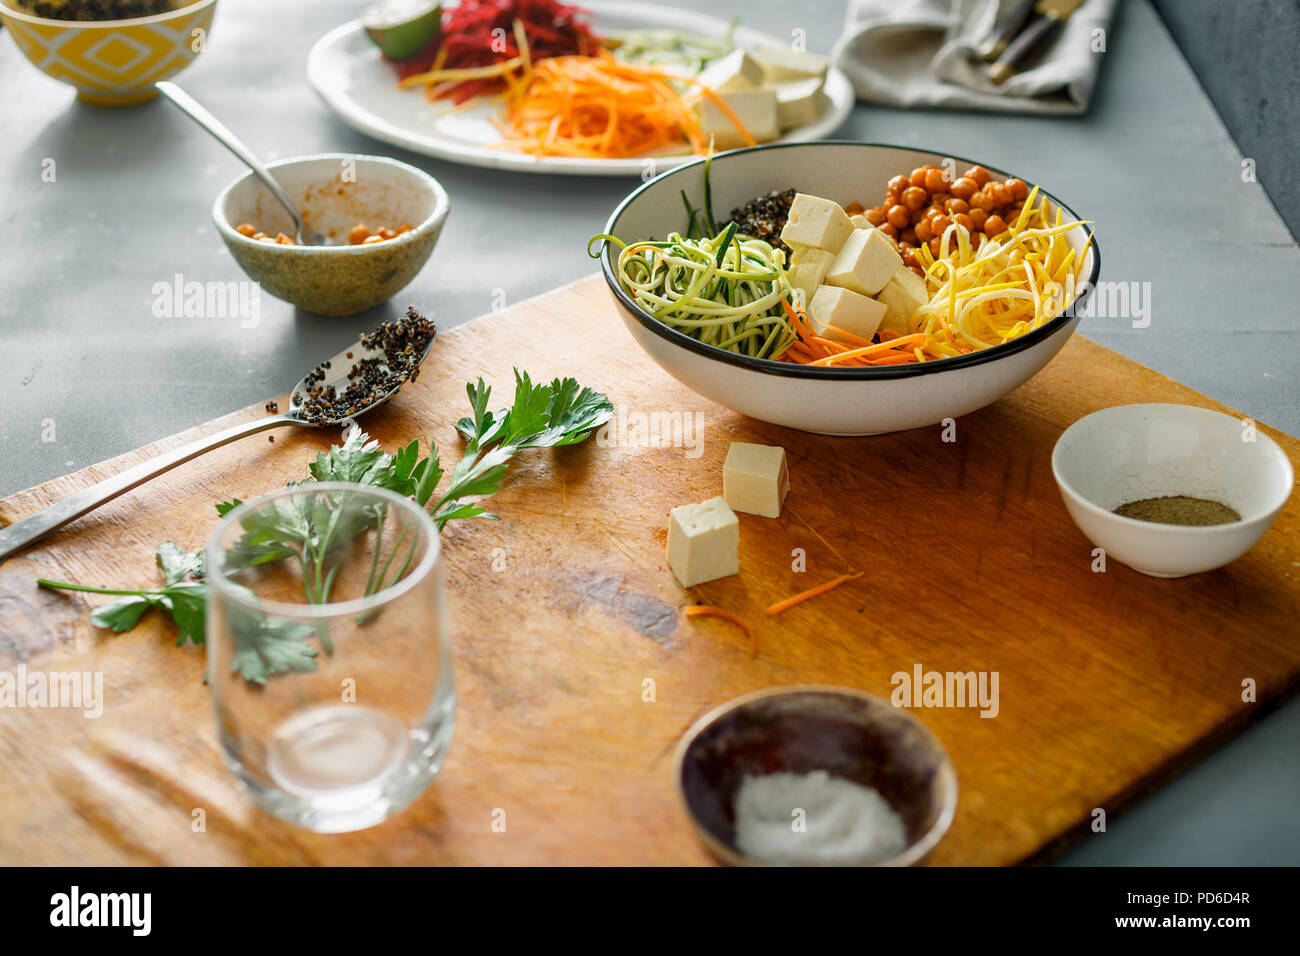 Healthy food clean eating concept. Cooking bowl buddha of spiralized vegetables Stock Photo